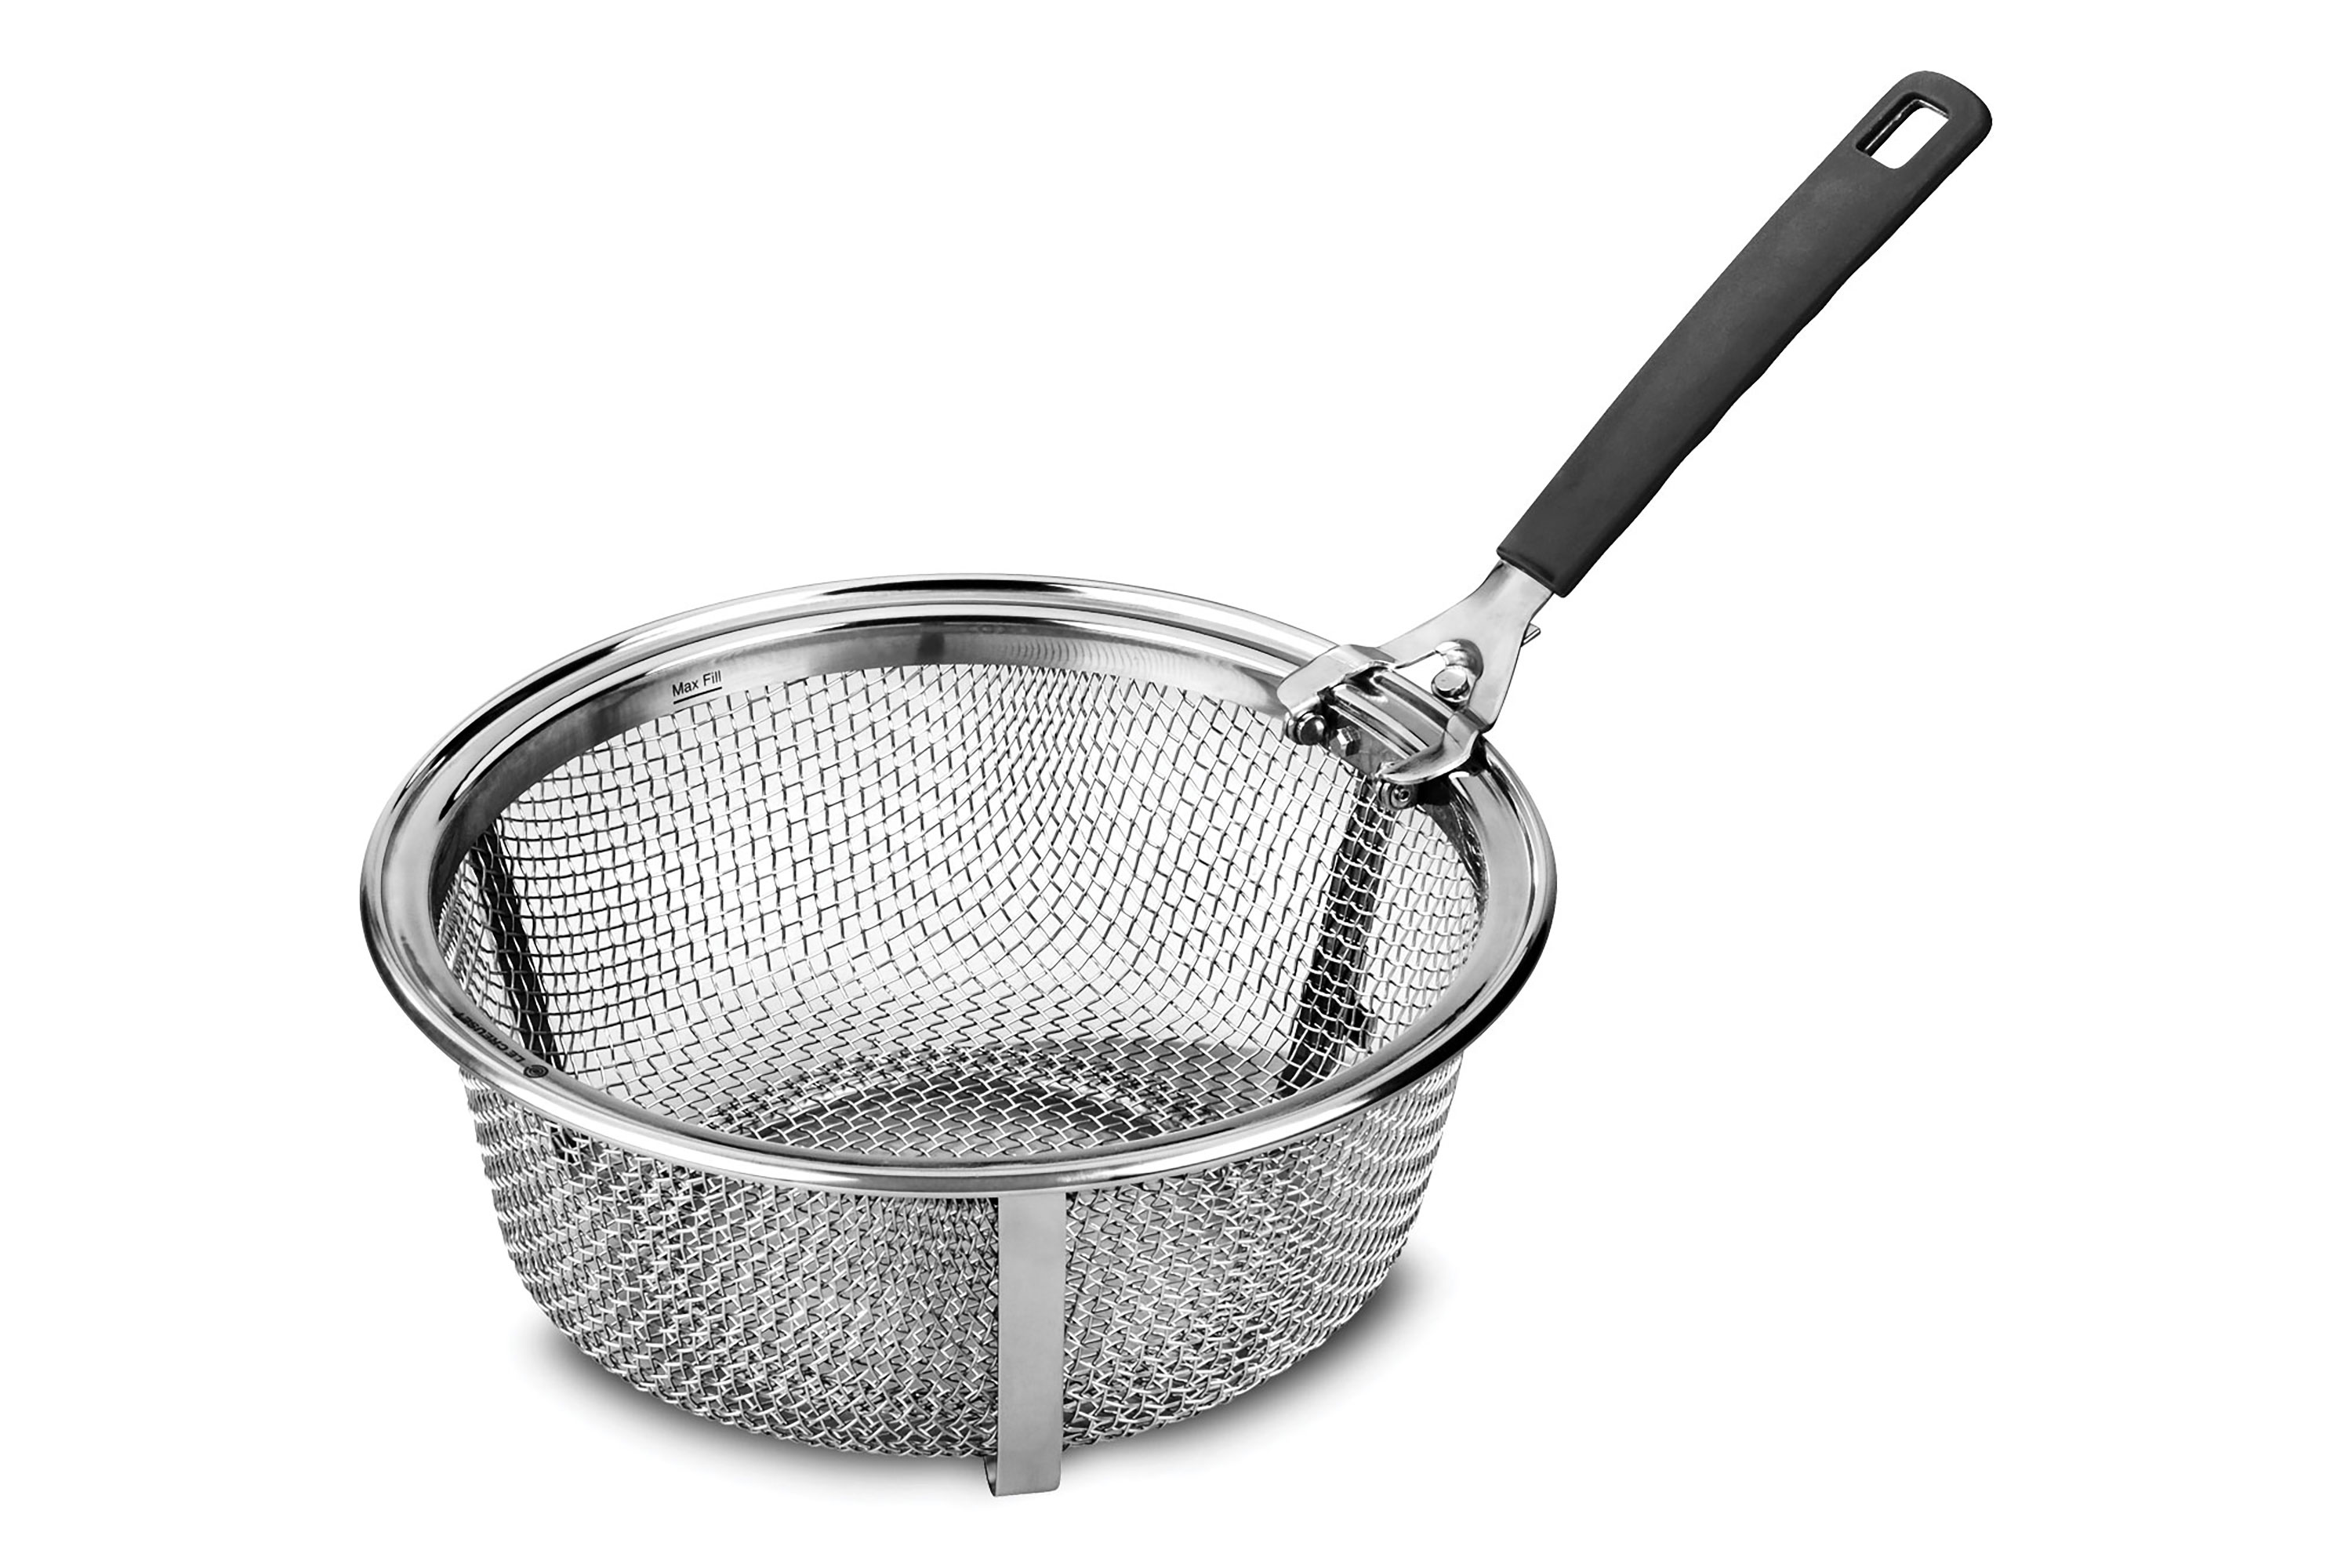 Le Creuset Stainless Steel Fry Basket For 5 Quart Round Cutlery And More